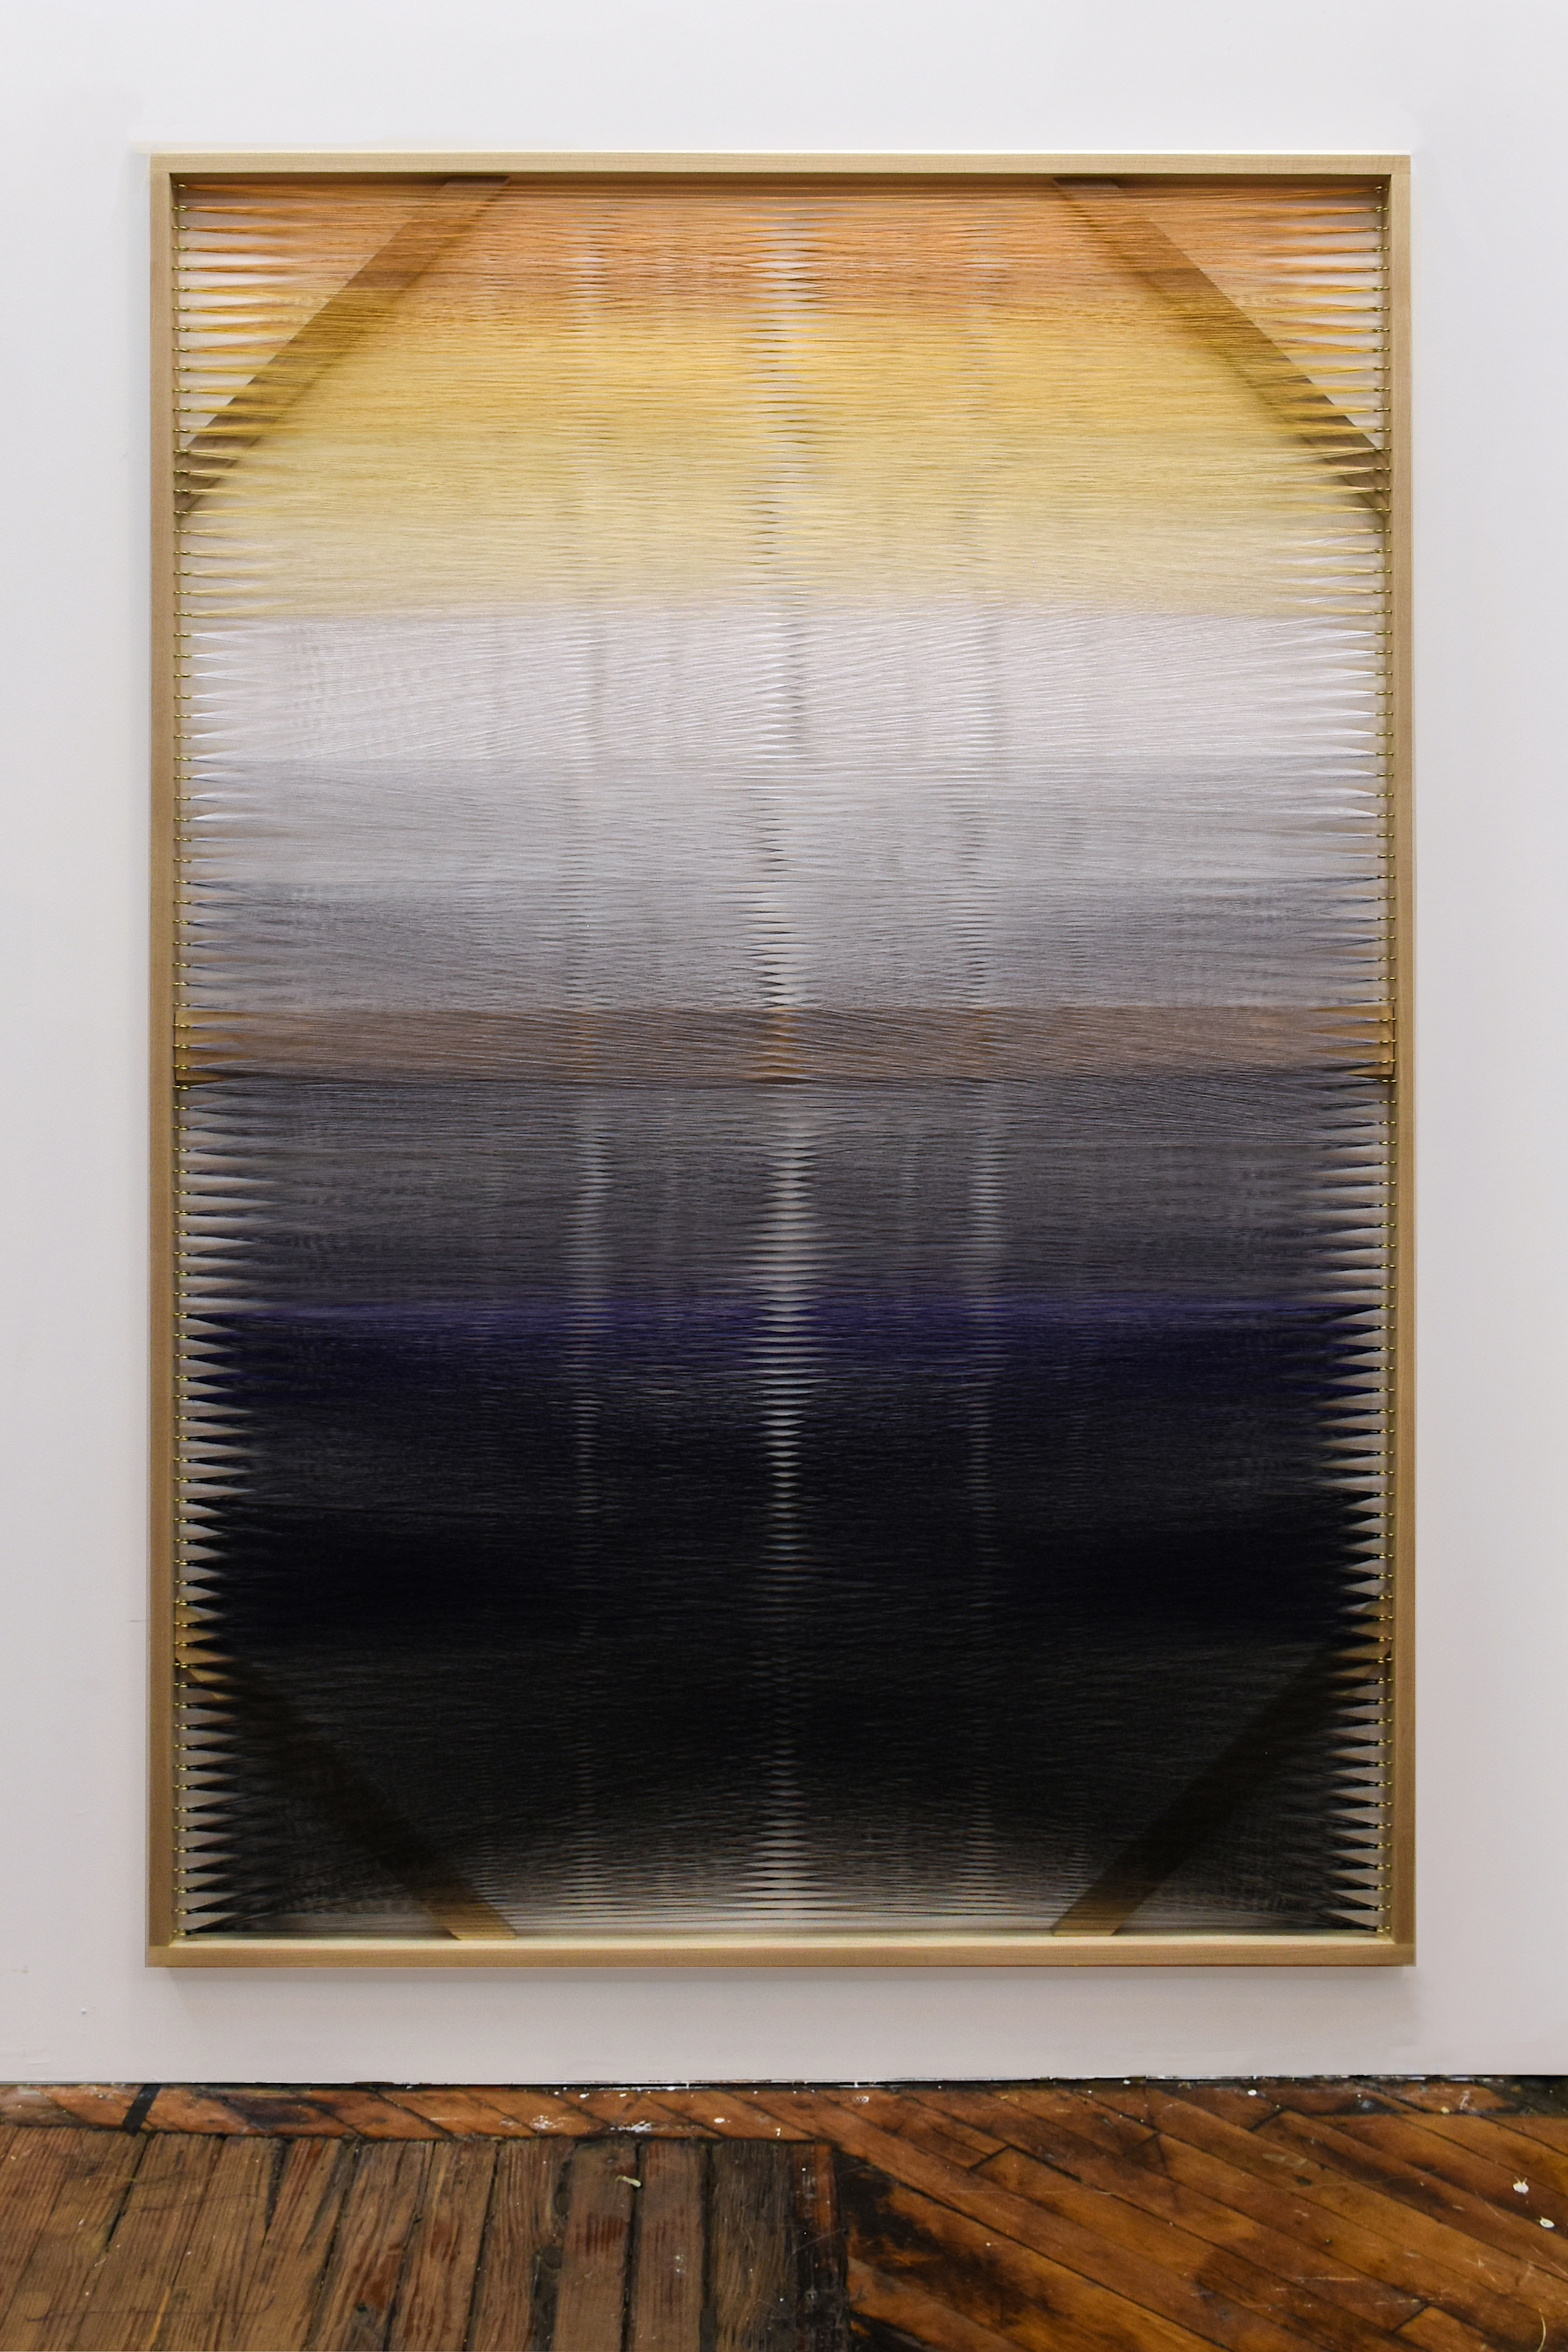 Woven Screen (Winter Moon)_2017_Polyester embroidery thread and maple_66%22 x 48%22 x 1.5%22_$7000.jpg